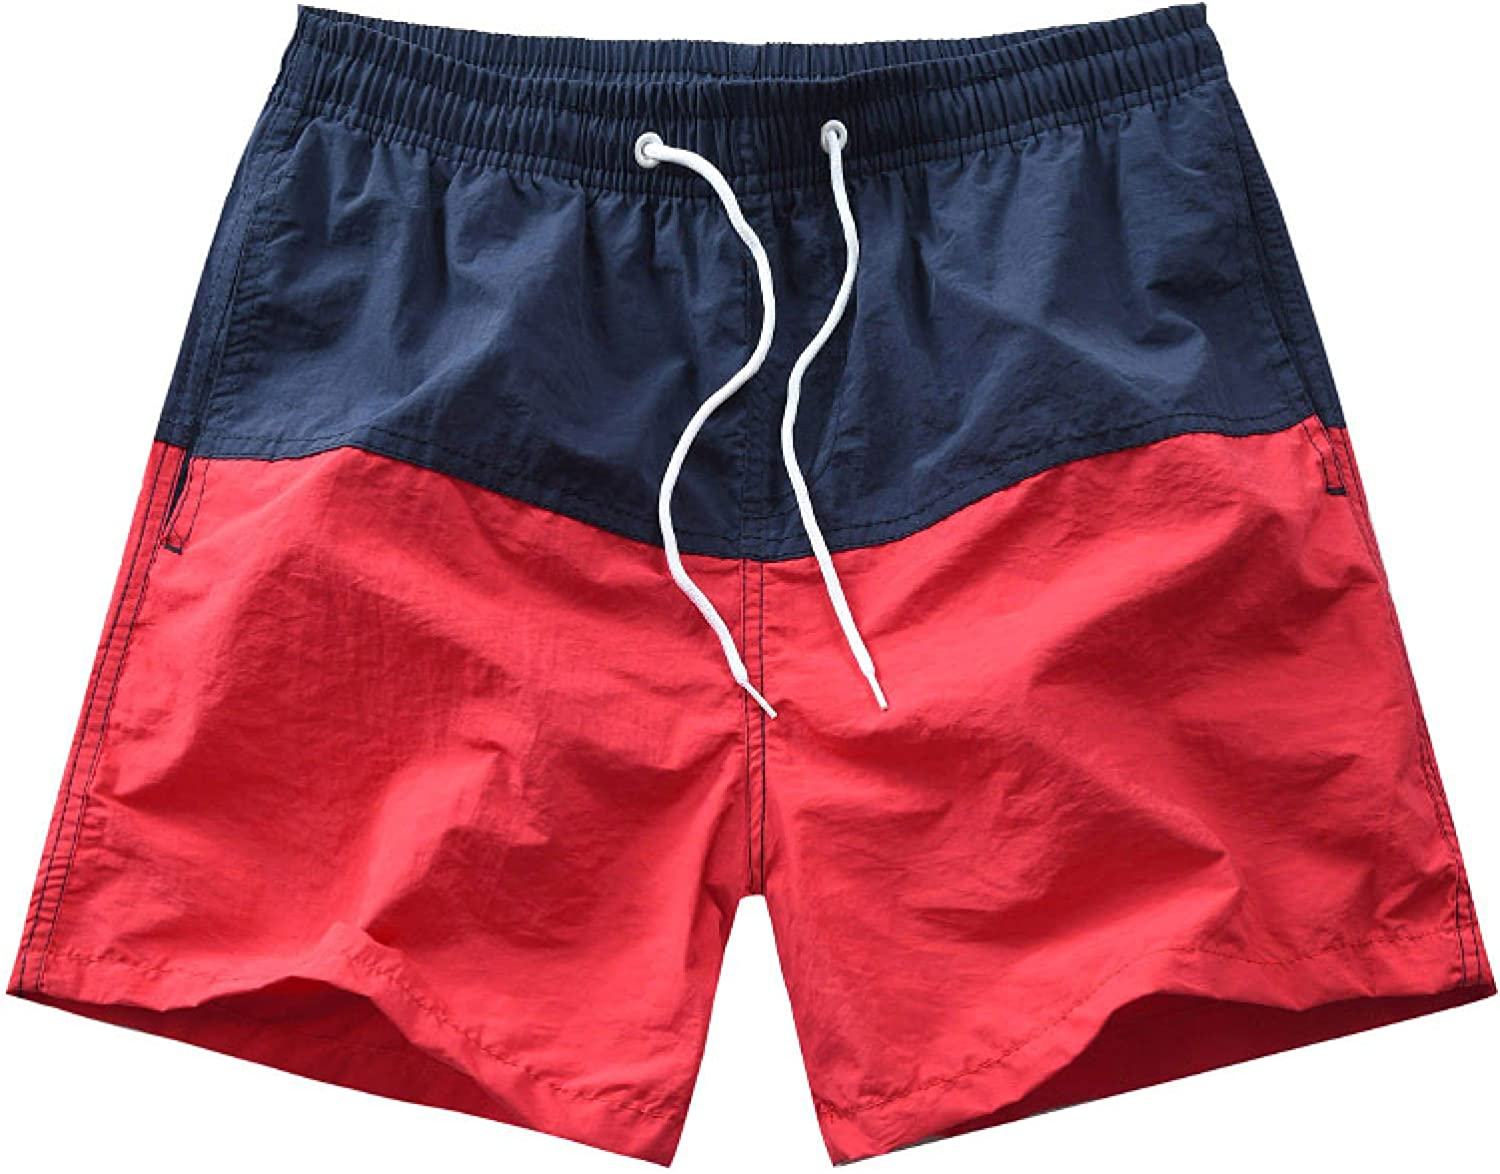 Katenyl Men's Relaxed Beach Shorts Fashion Patchwork Color Matching Streetwear Trend